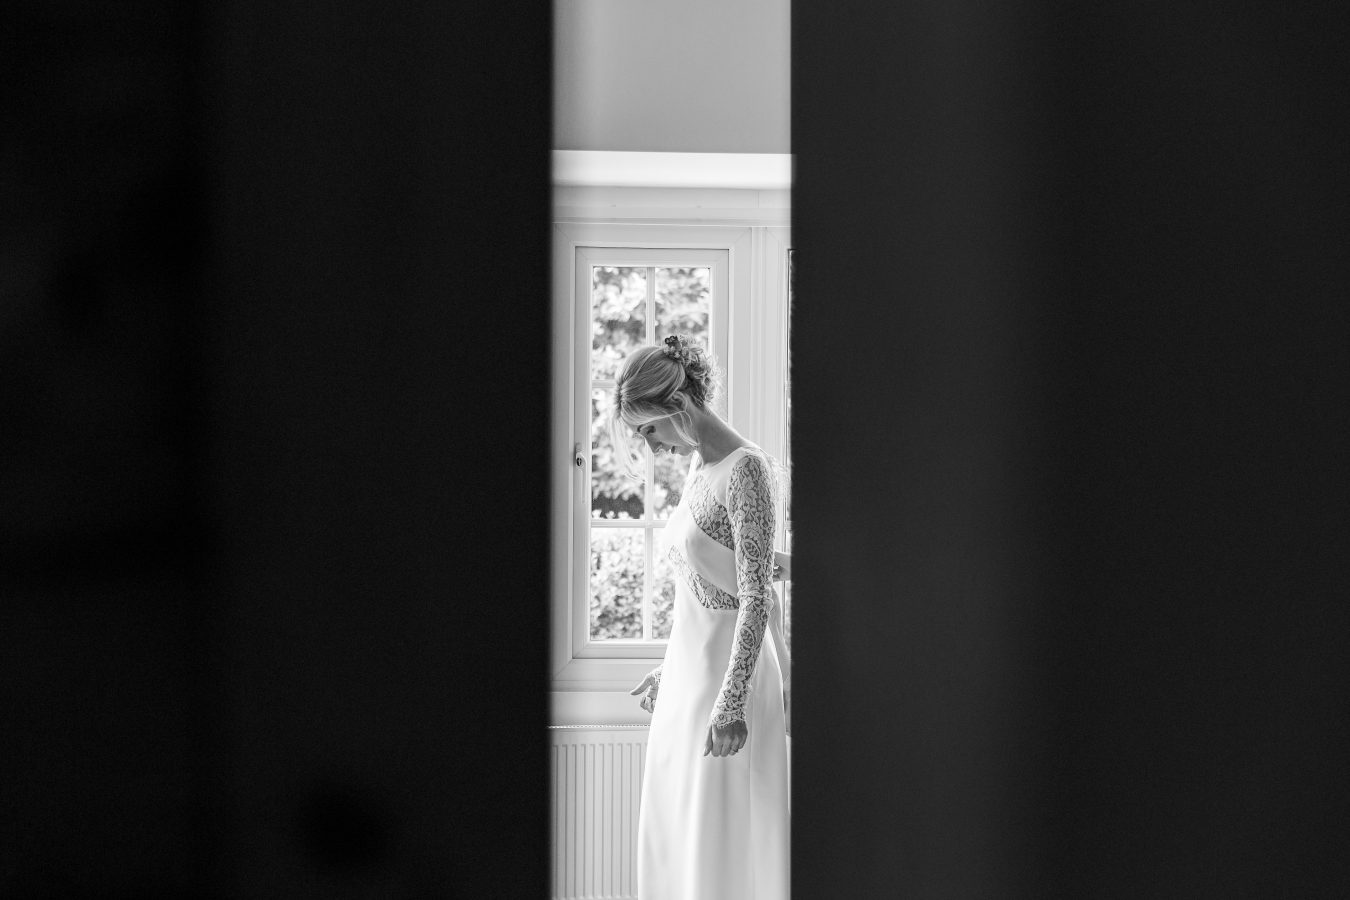 Sarah-Seamy-Jules-Barron-Alternative-Wedding-Venue-2018-70